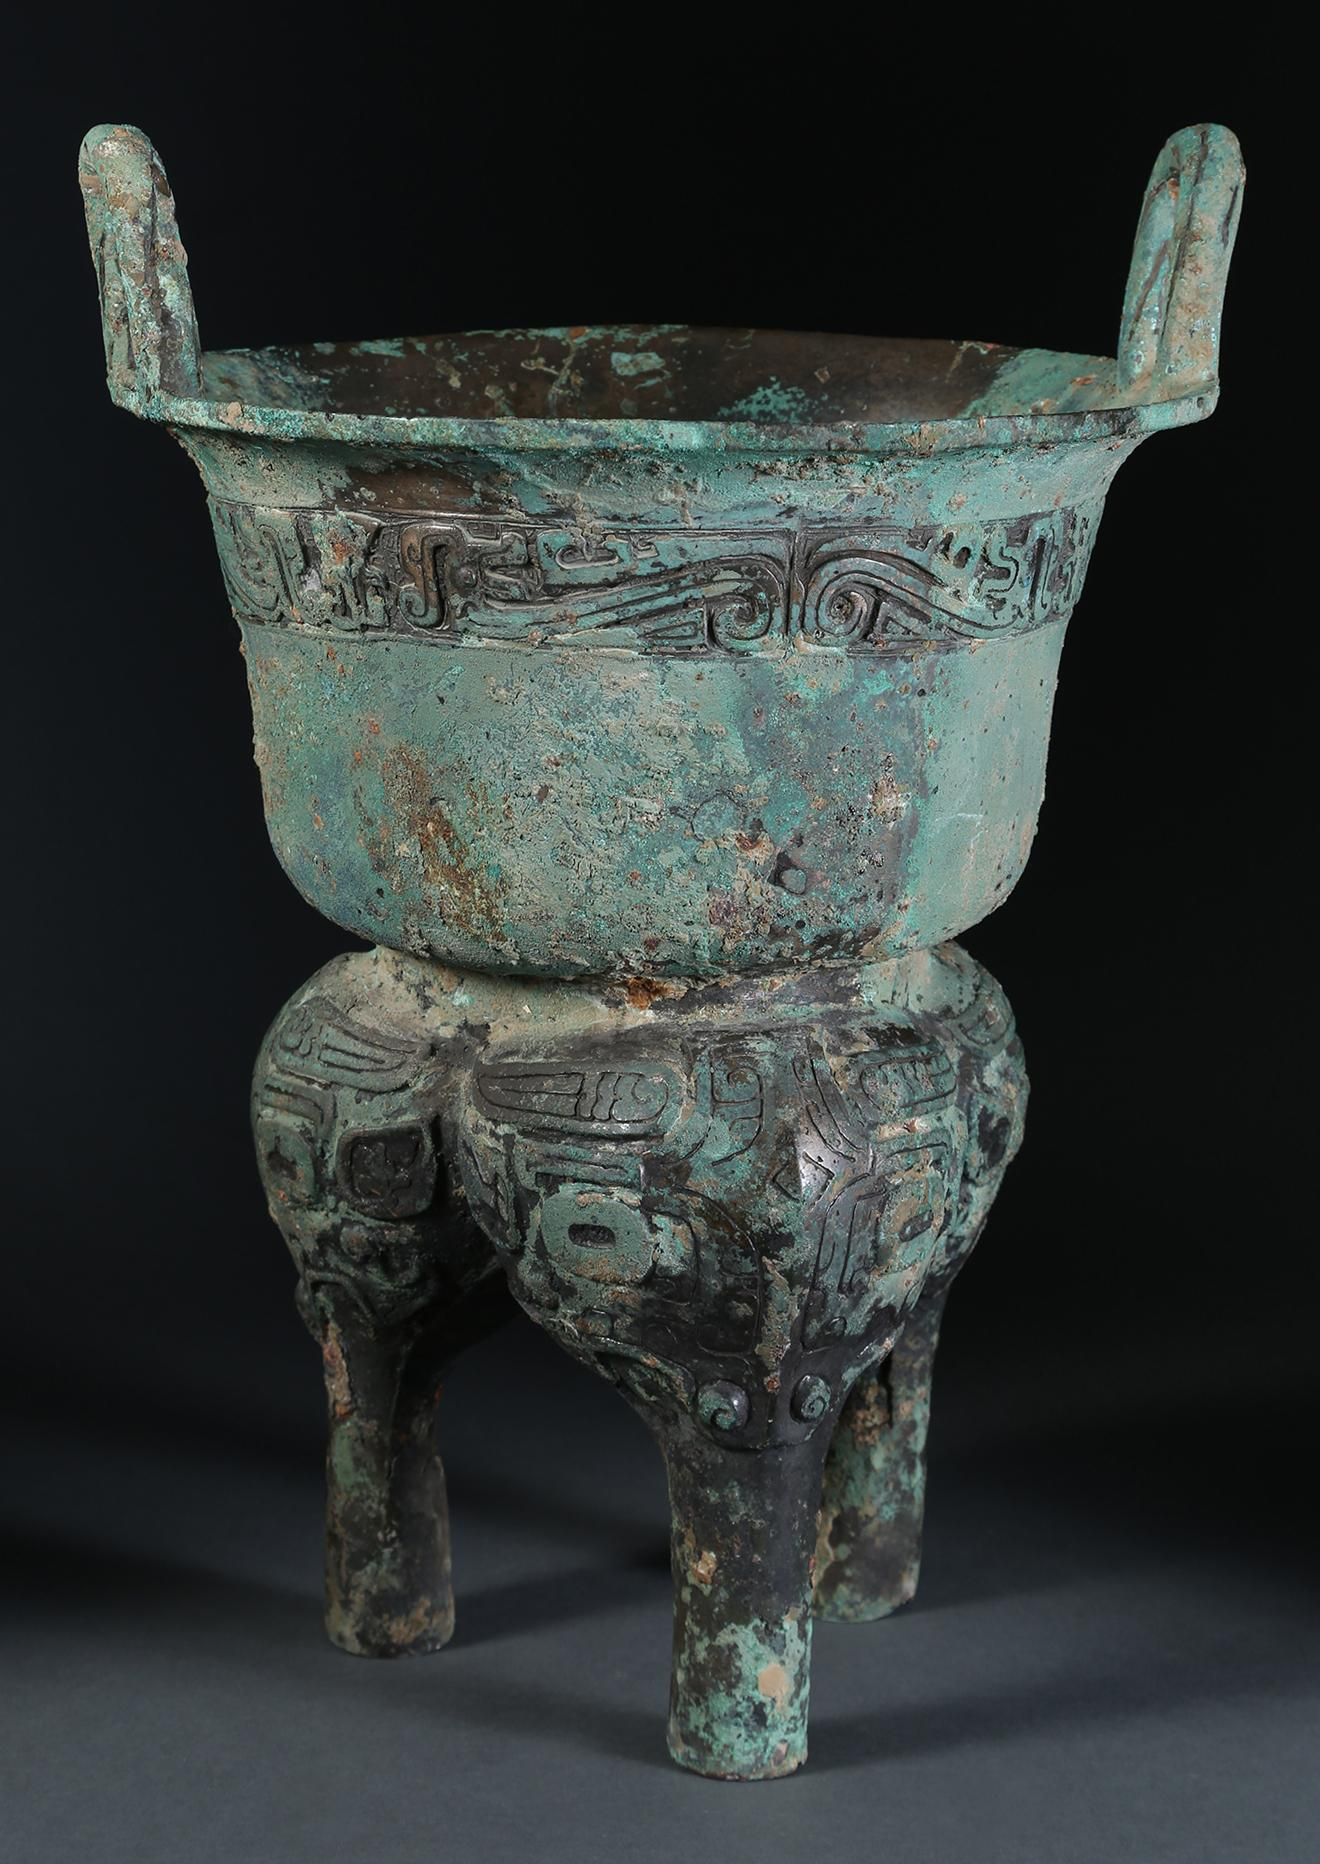 Asian Art Chinese Archaic Bronze Cooking Vessel Yan Western Zhou Dynasty, New York Auction House, Houston Auction, Dallas Auction, San Antonio Auction, Chinese Auciton, 中国艺术拍卖,  青铜, 甗